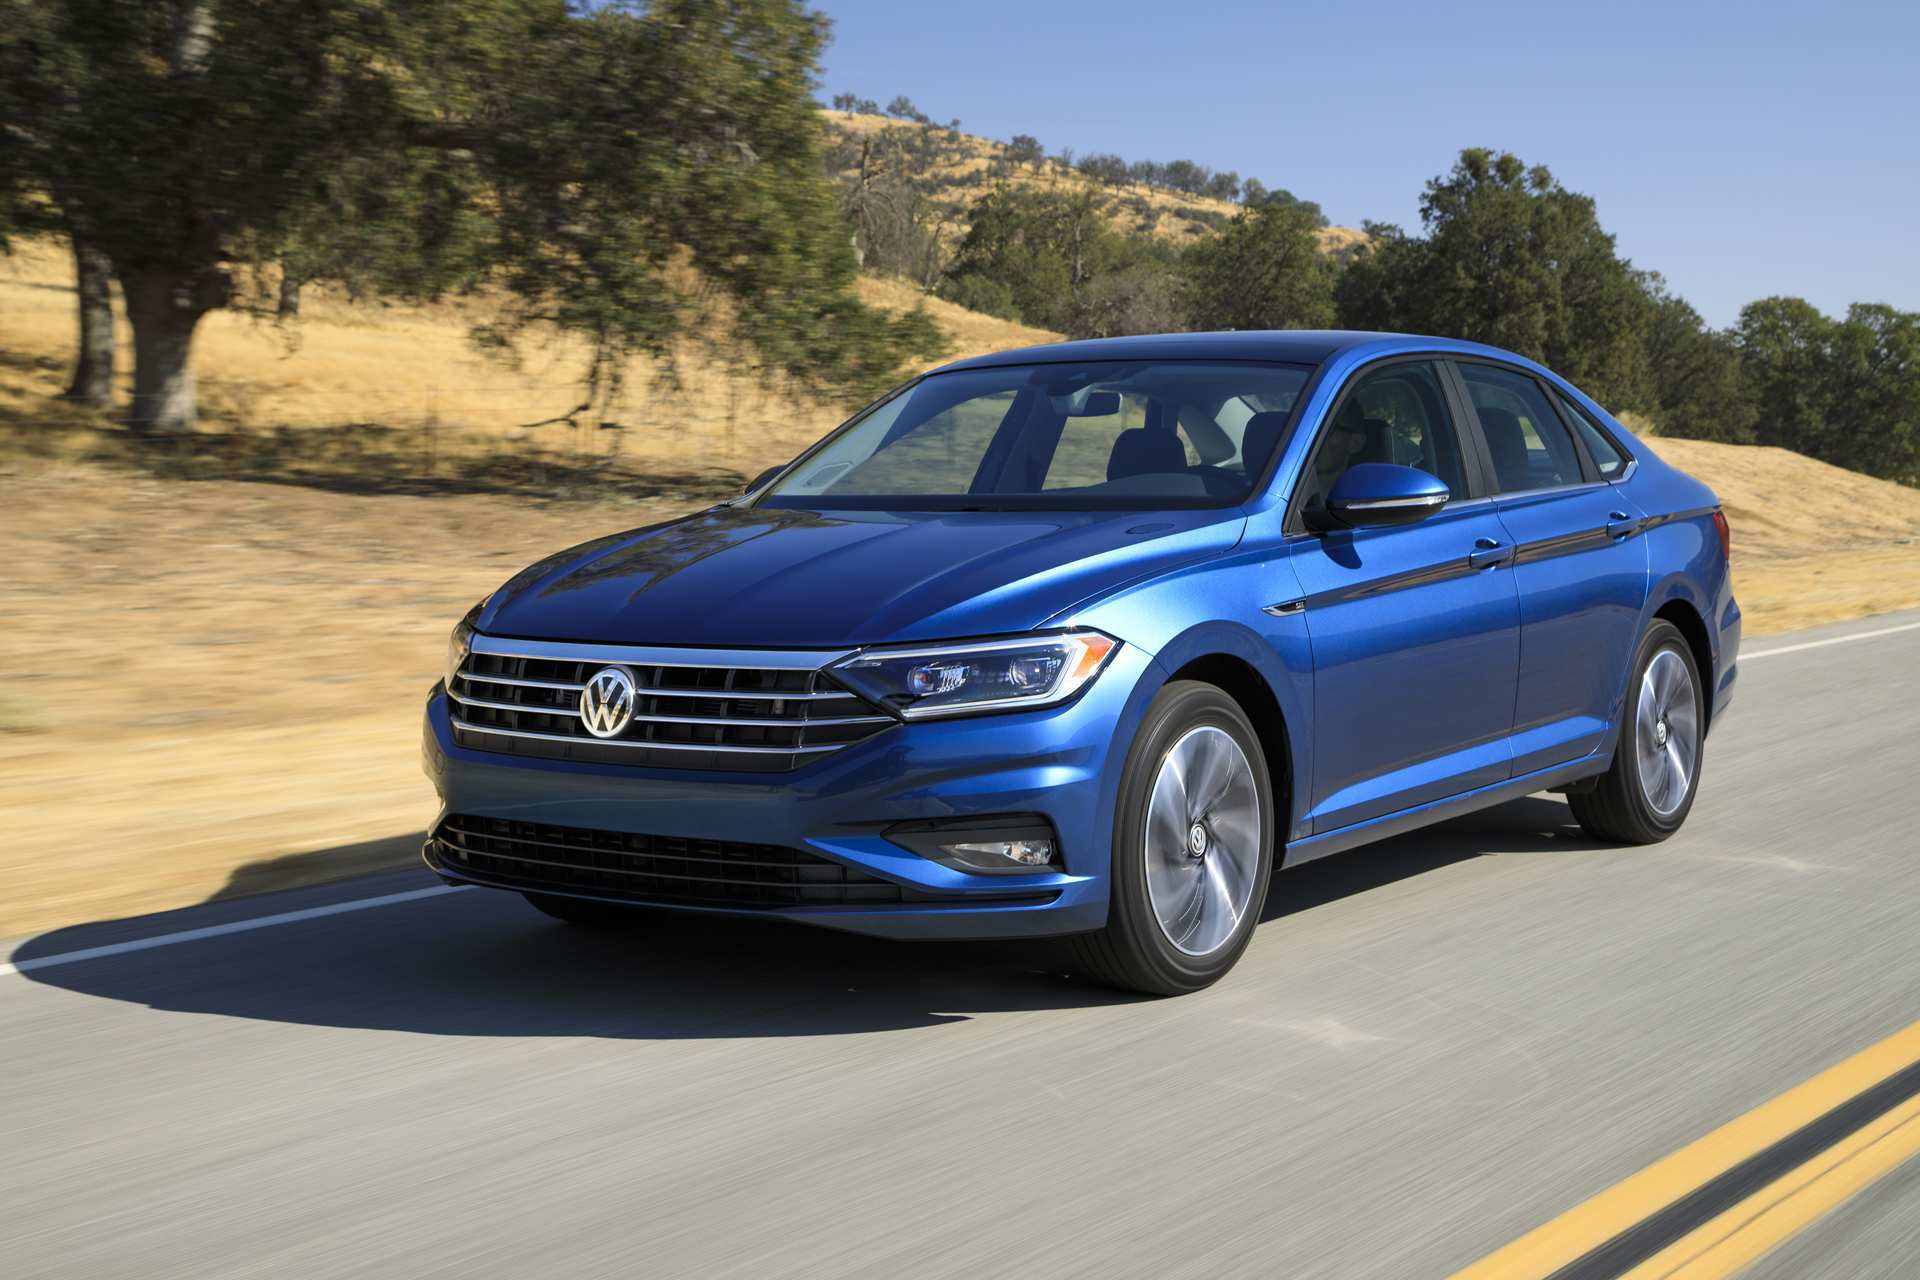 37 The 2019 Volkswagen Jettas Exterior And Interior